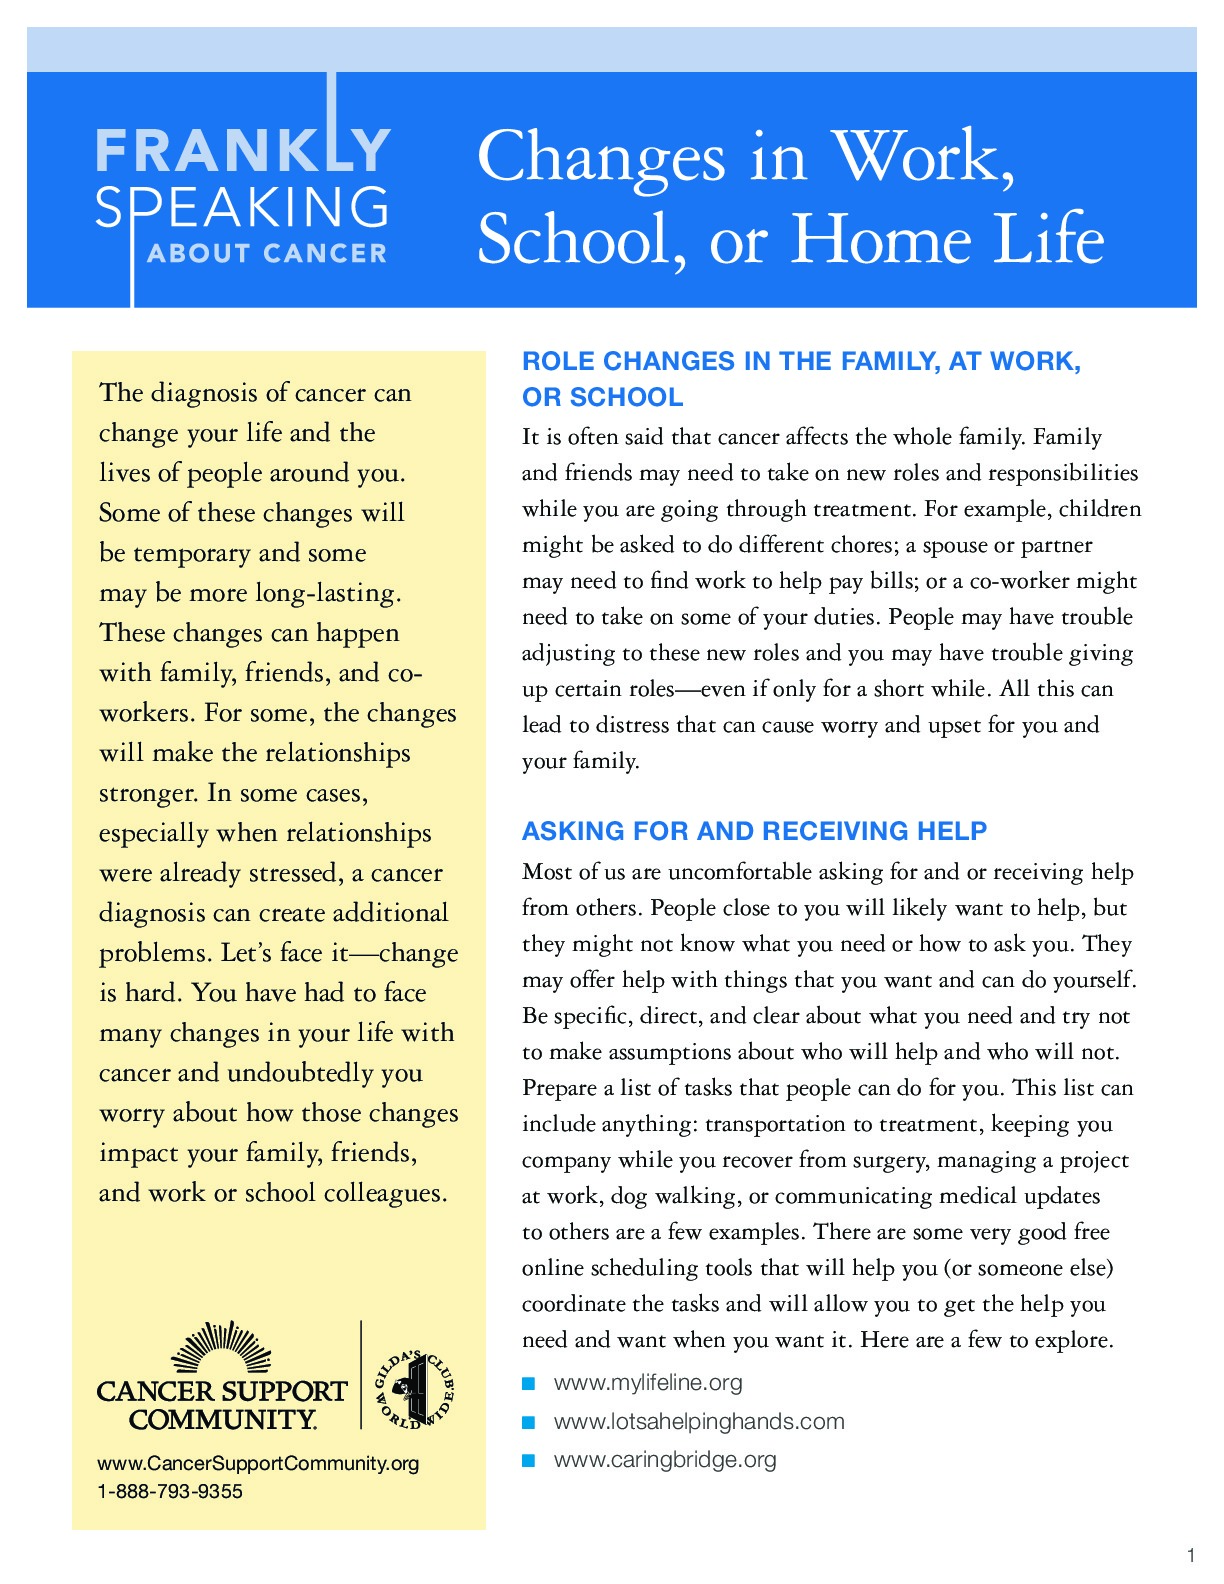 Changes in Work, School, or Home Life